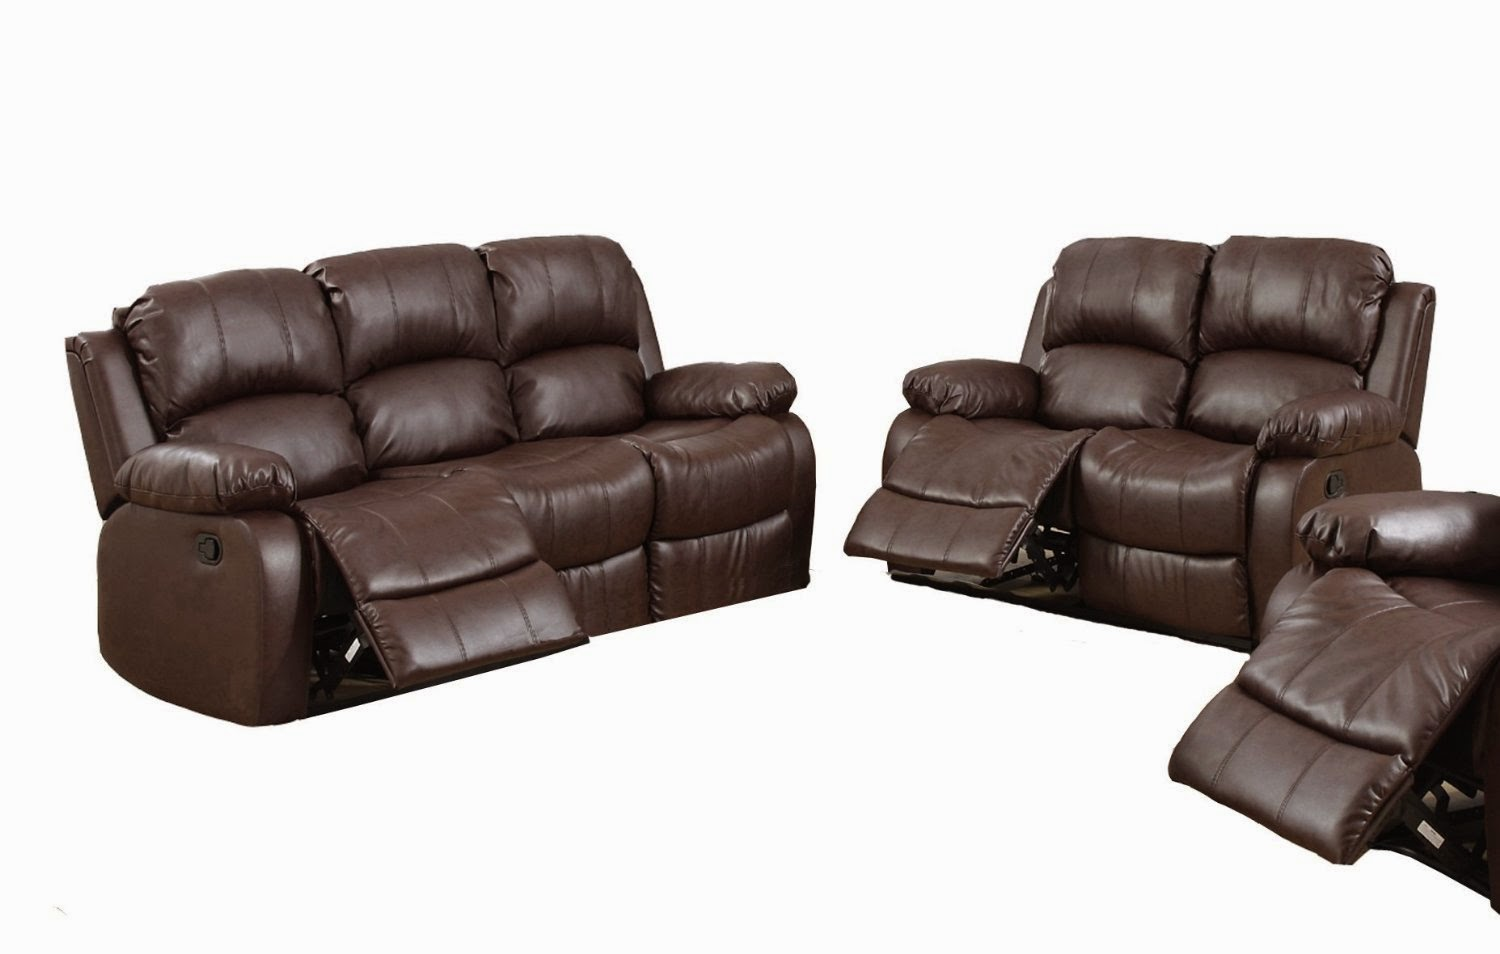 Cheap reclining sofa and loveseat sets april 2015 for Couch sofa set